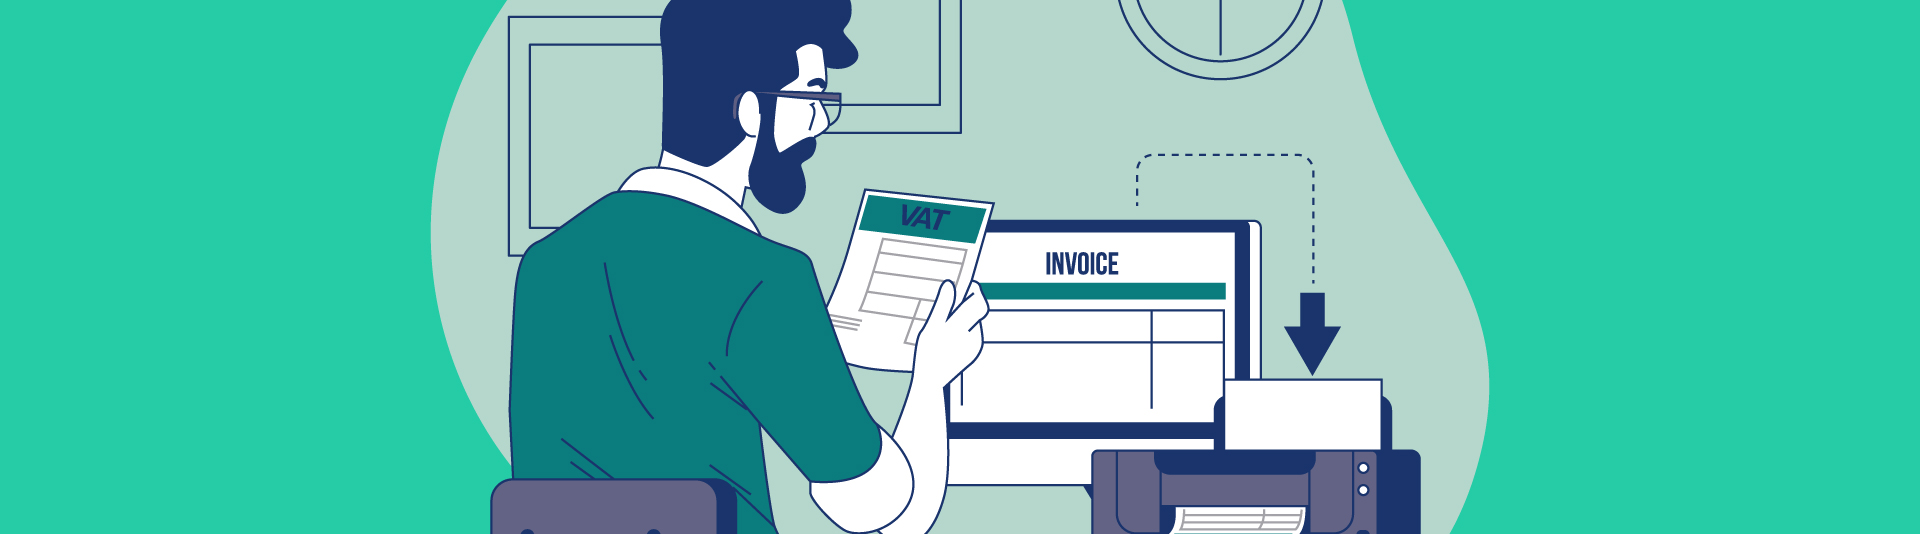 what-is-vat-invoice